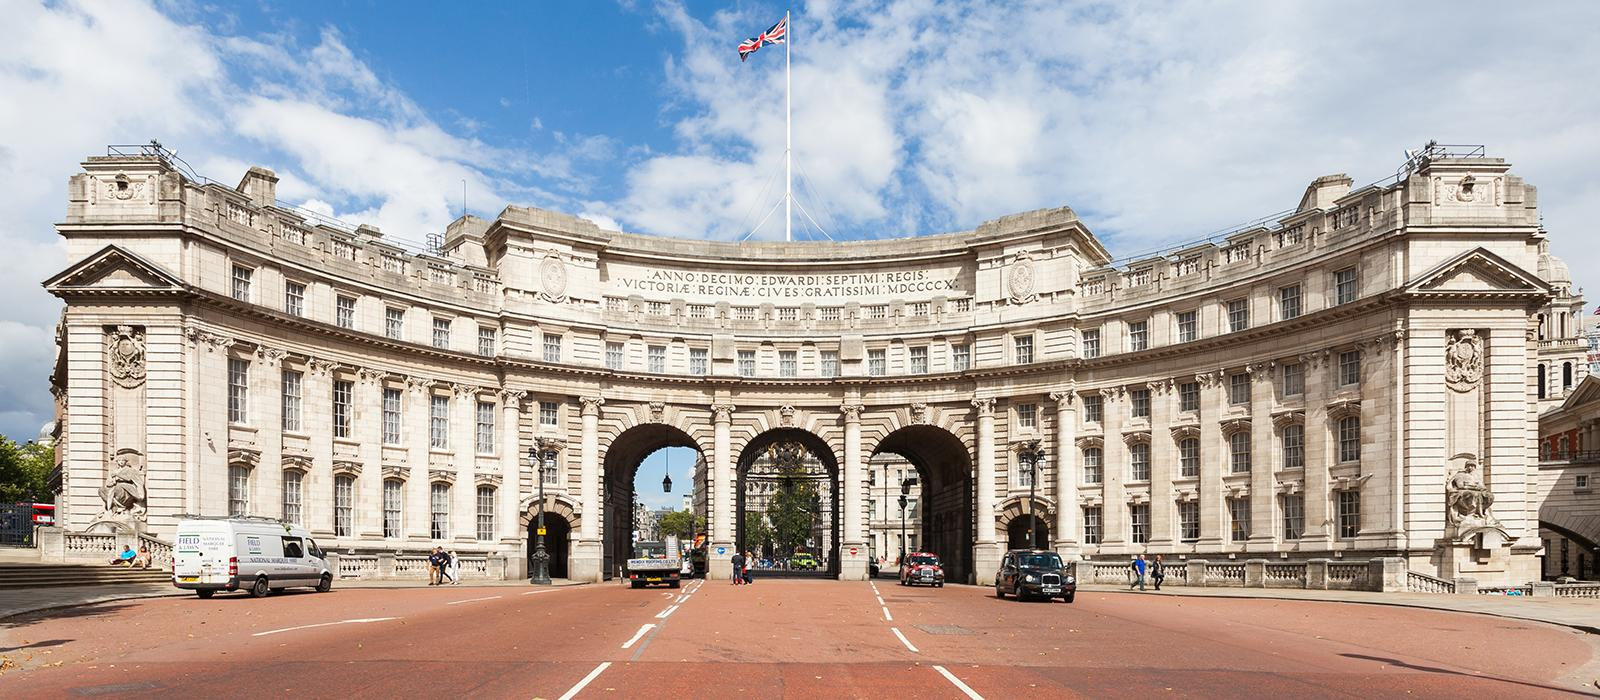 Admmiralty Arch